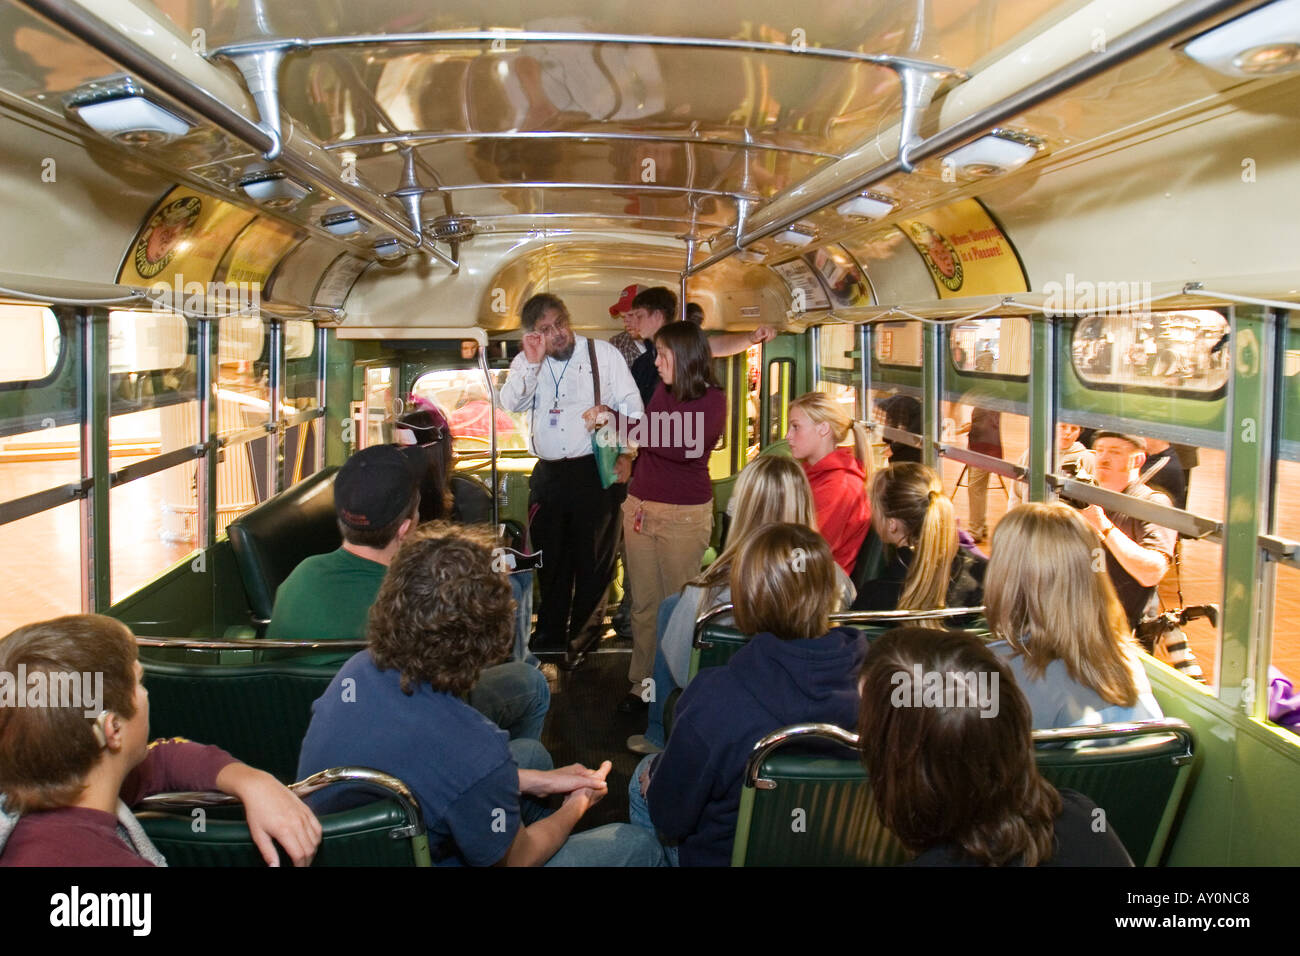 Students Visit Rosa Parks Bus In Museum On Day After Her